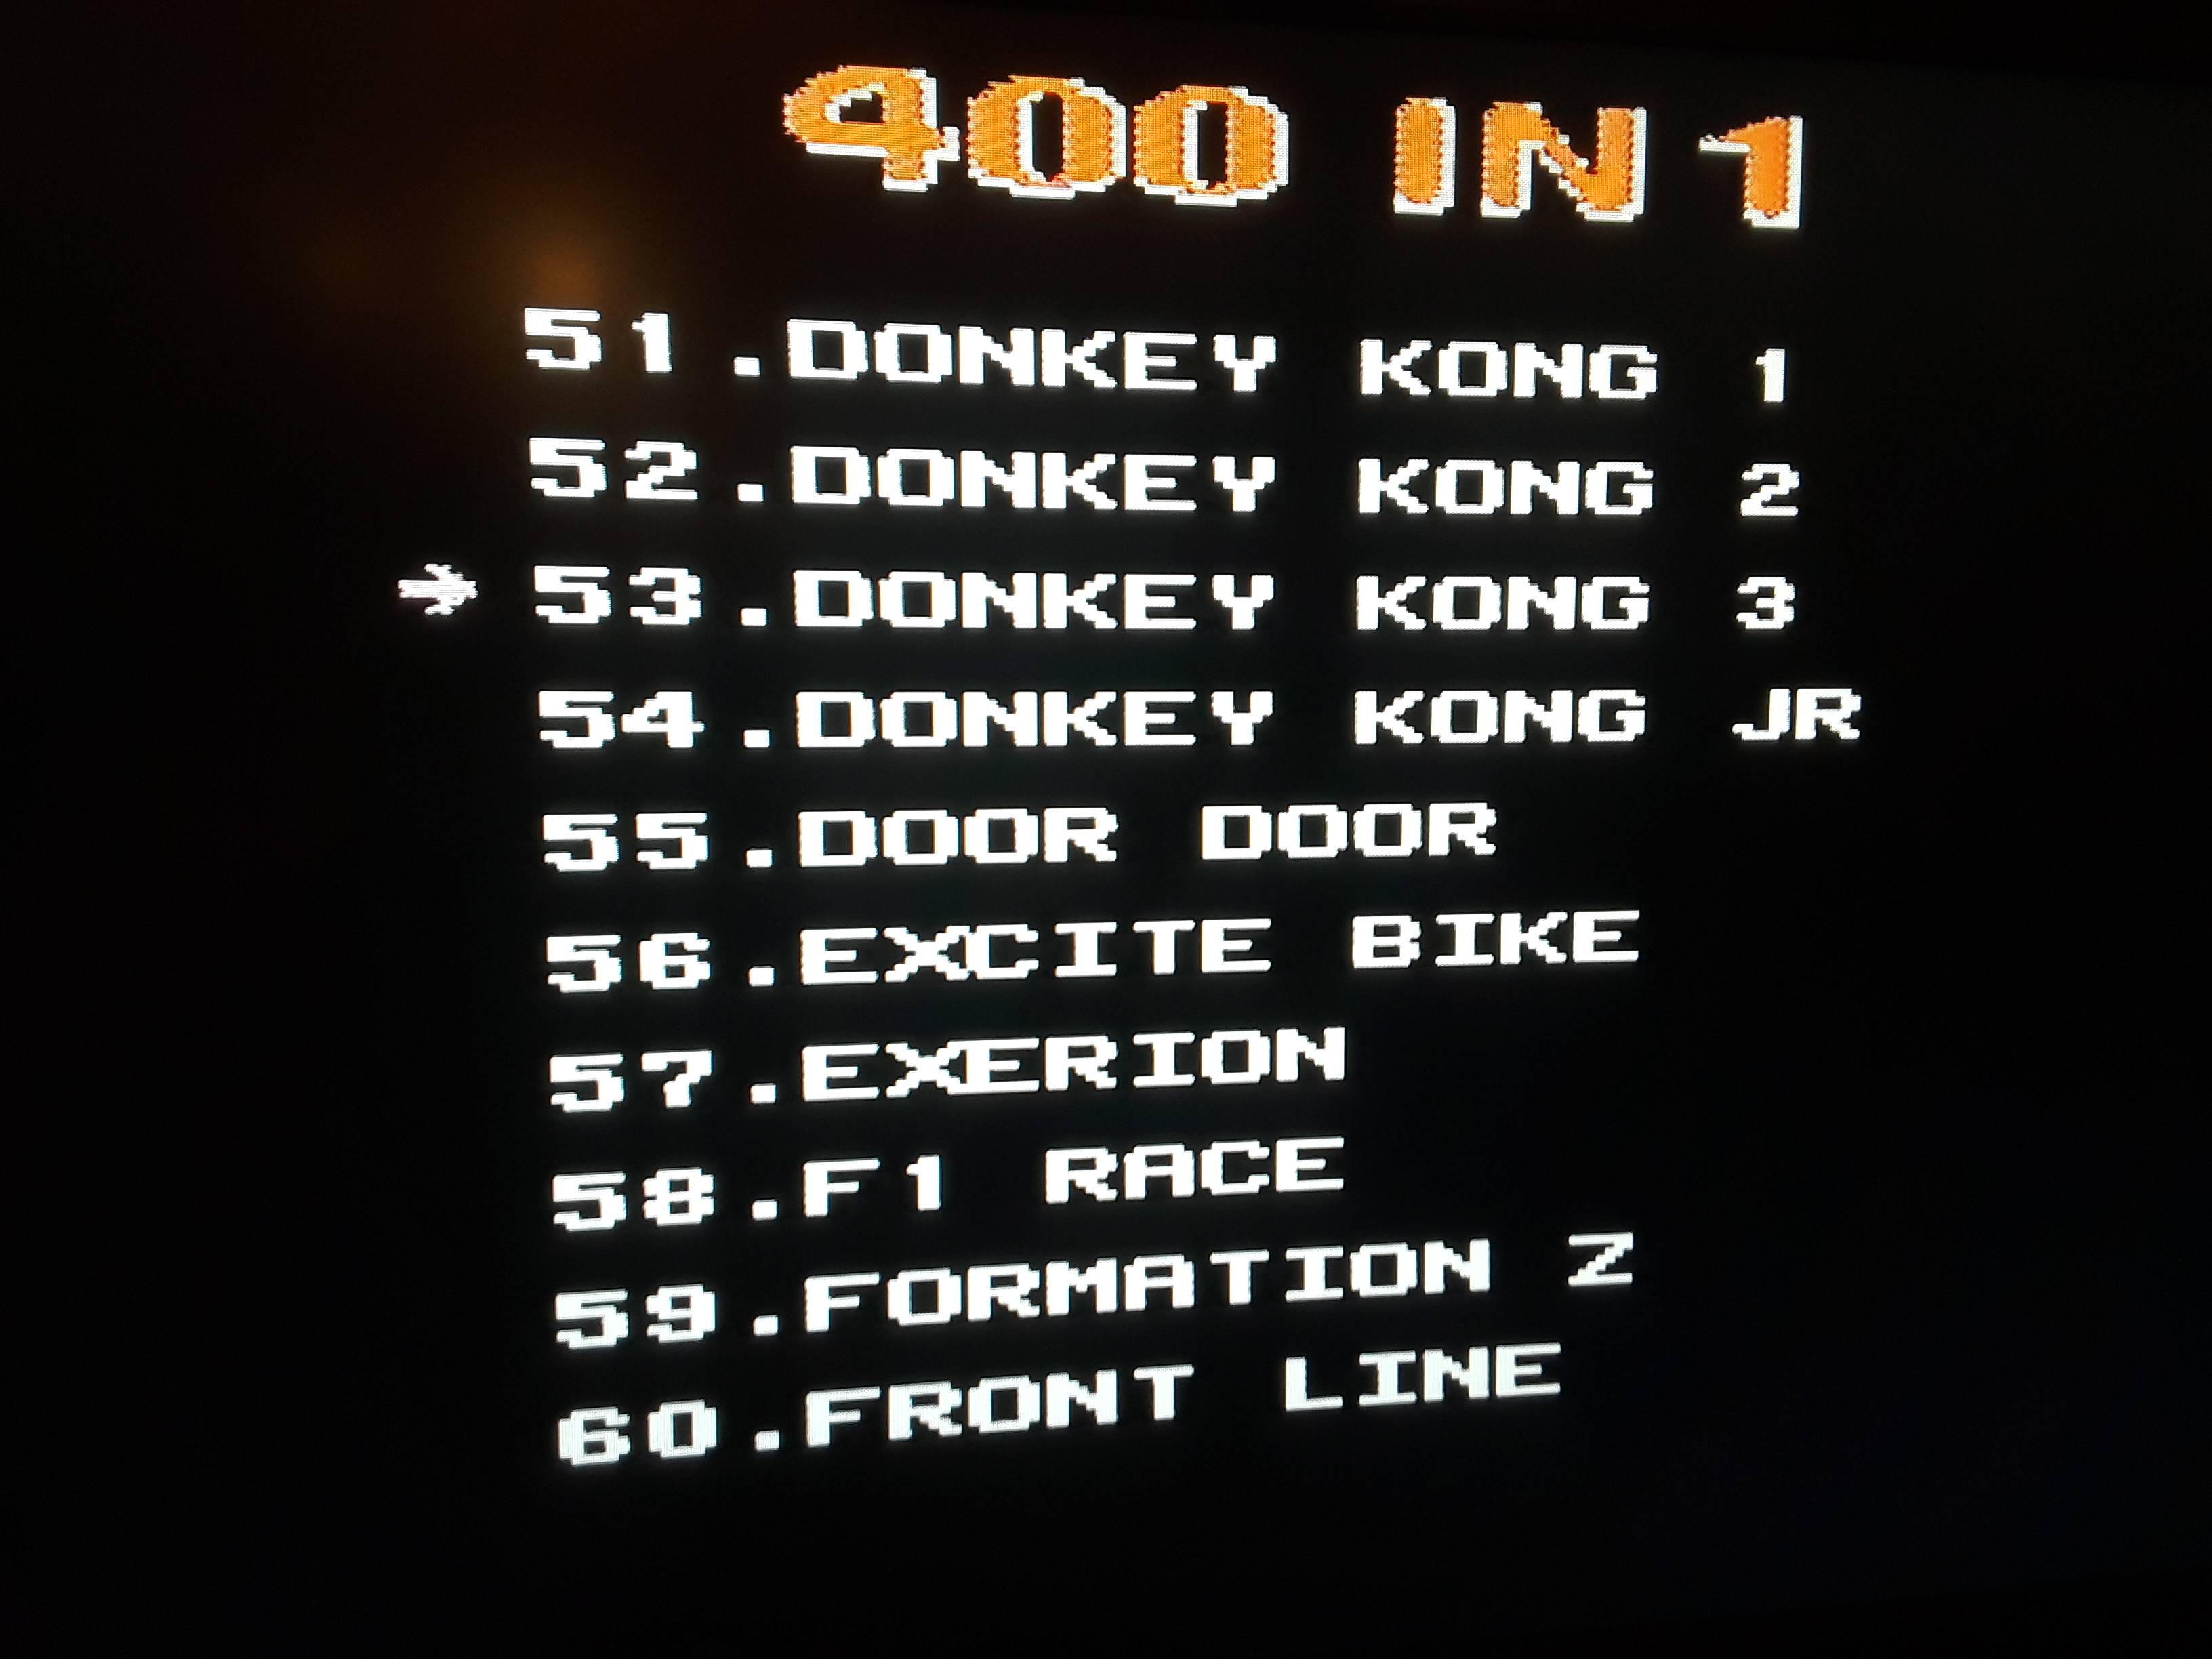 Donkey Kong 3: Game A 9,300 points